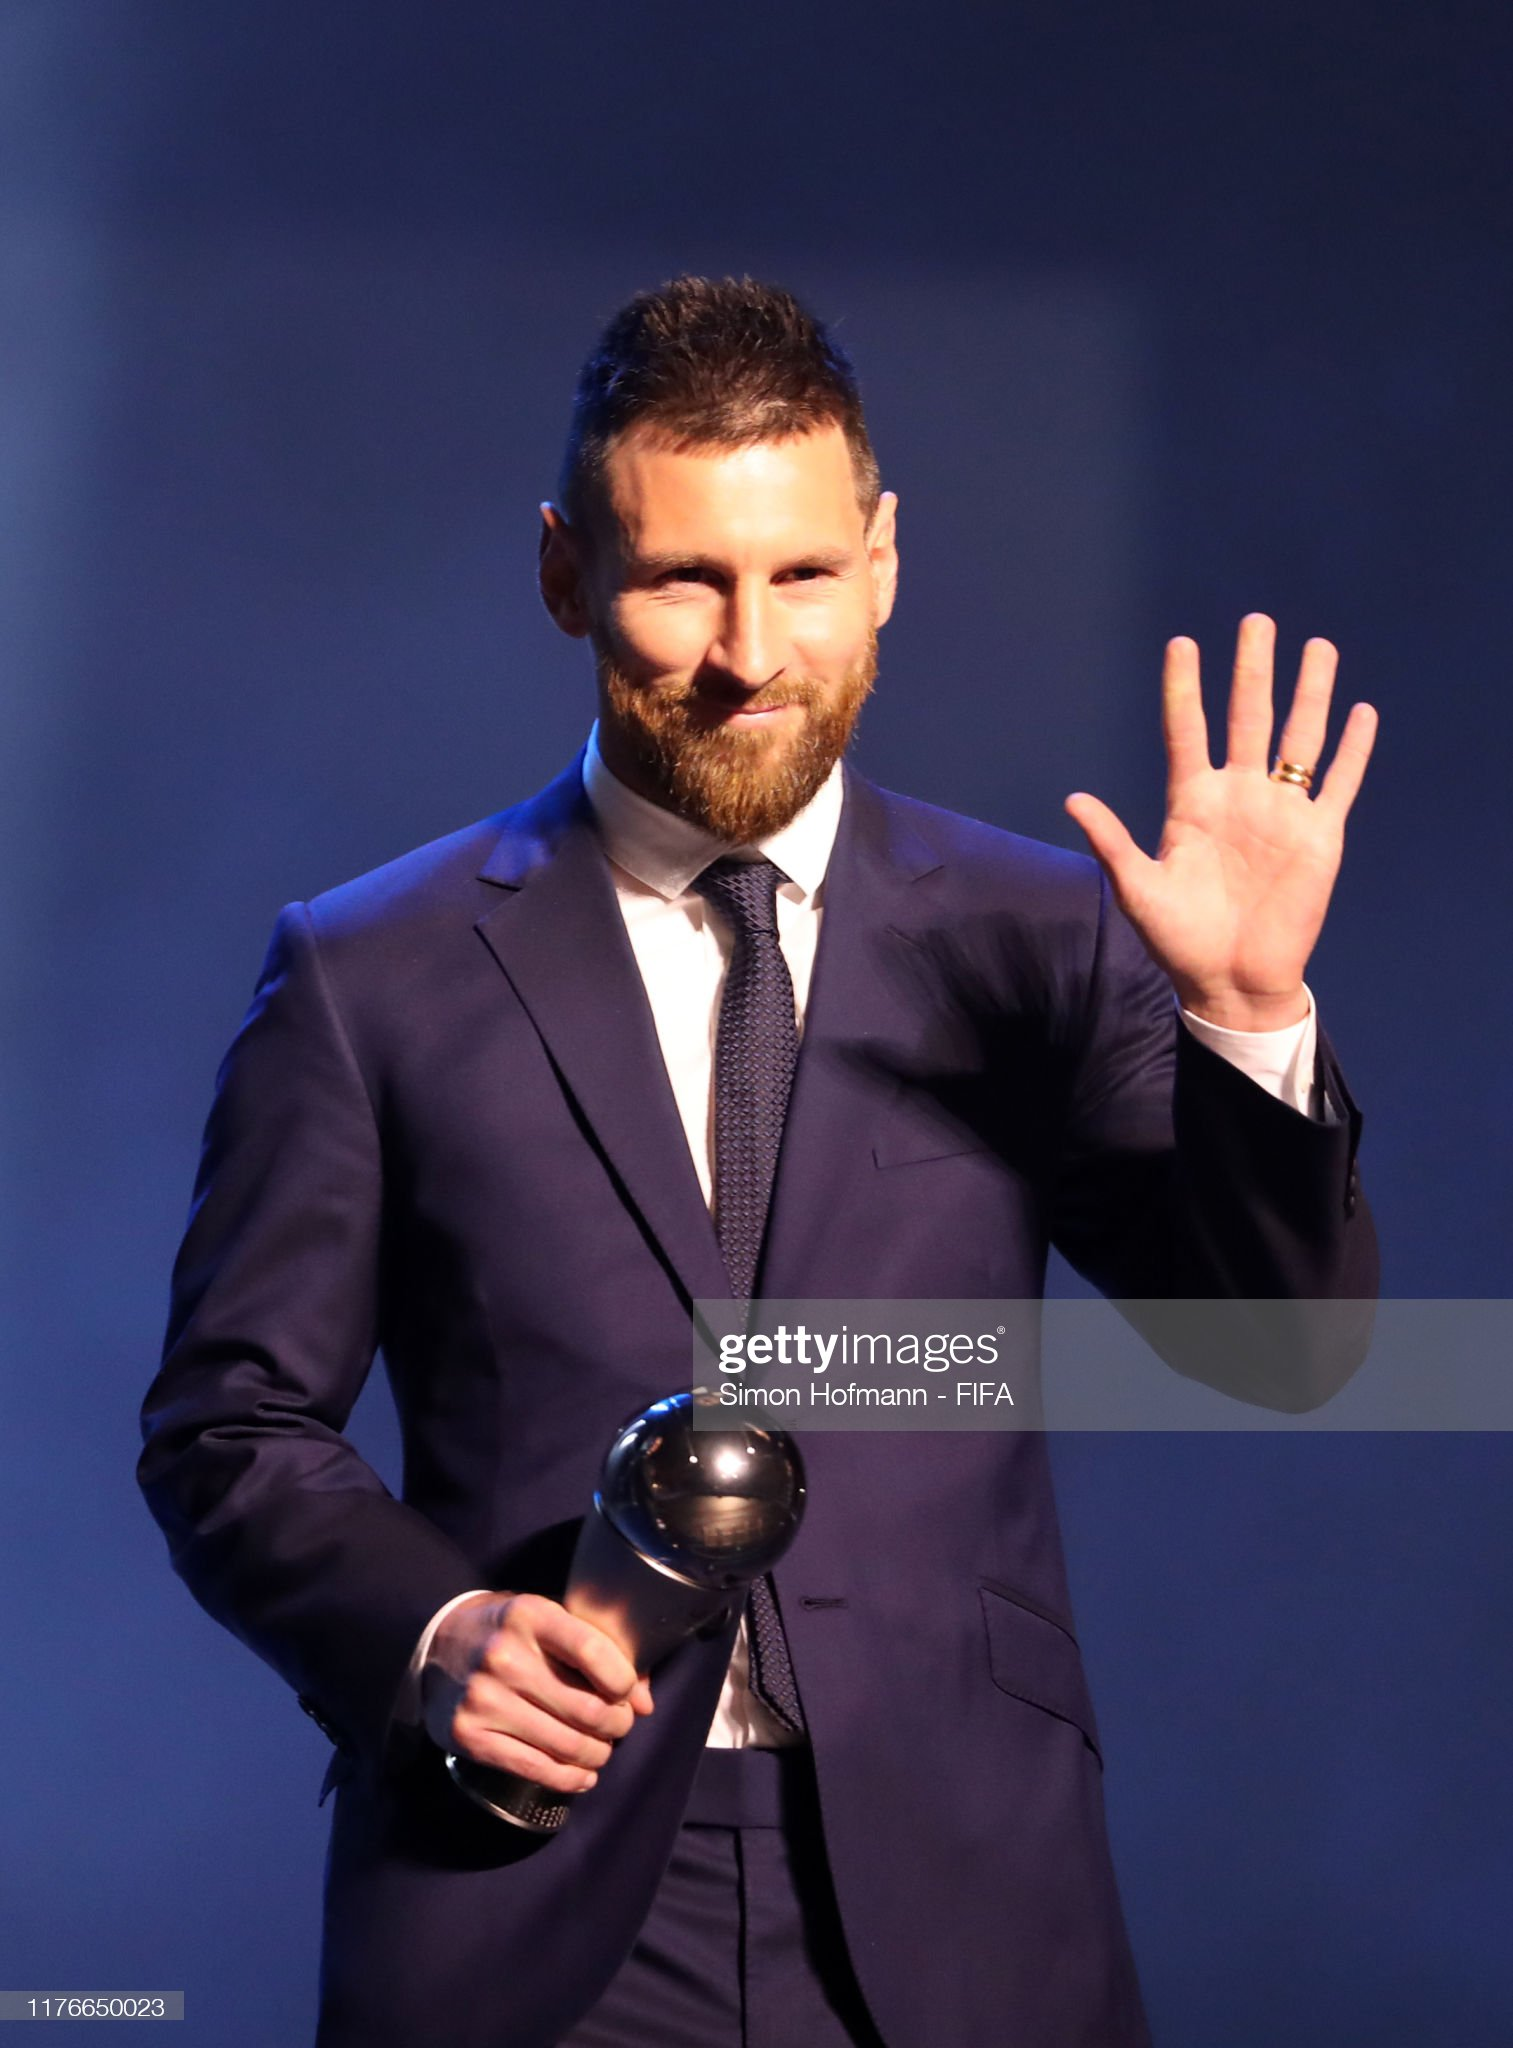 The Best FIFA Football Awards 2019 The-fifa-fifpro-mens-world11-award-winnner-lionel-messi-of-fc-and-picture-id1176650023?s=2048x2048